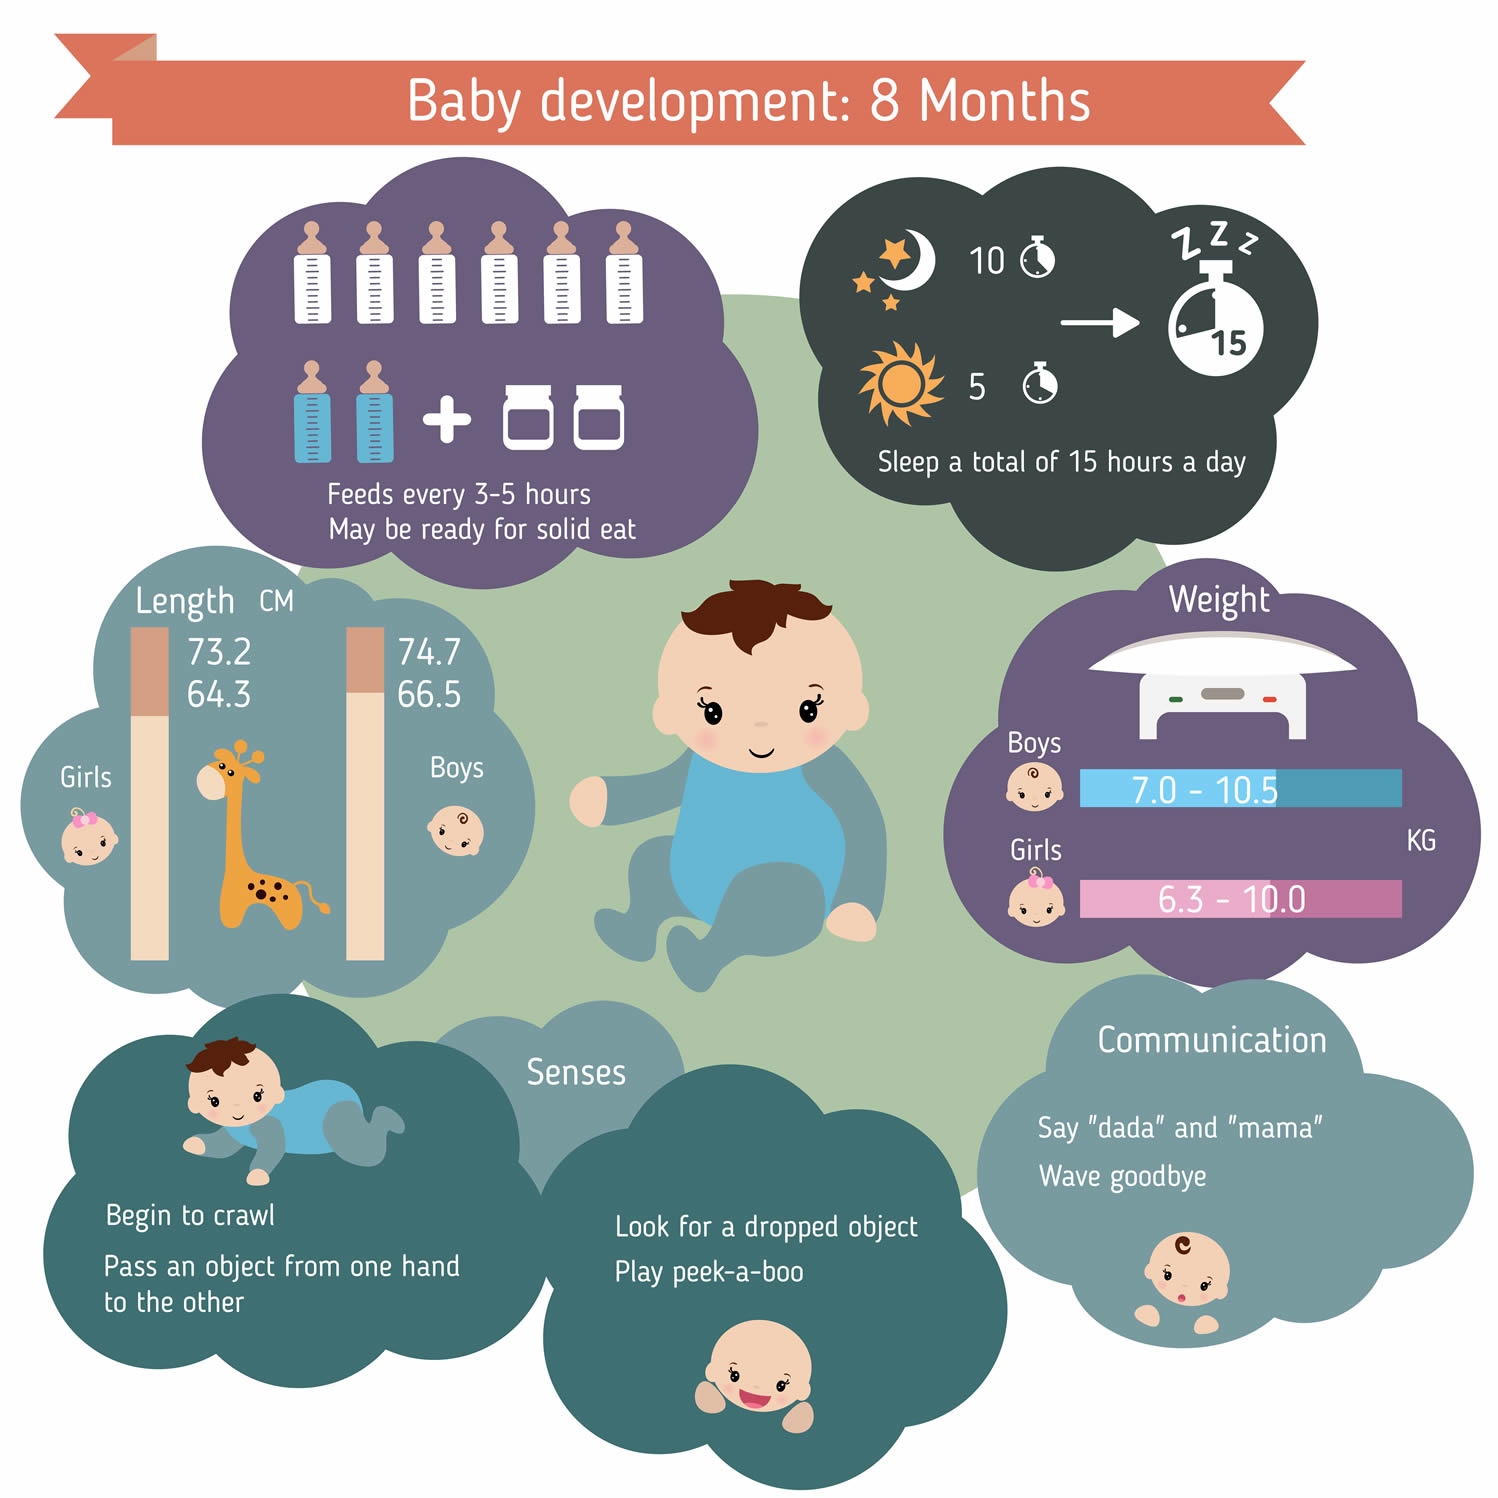 8-month infant care guide